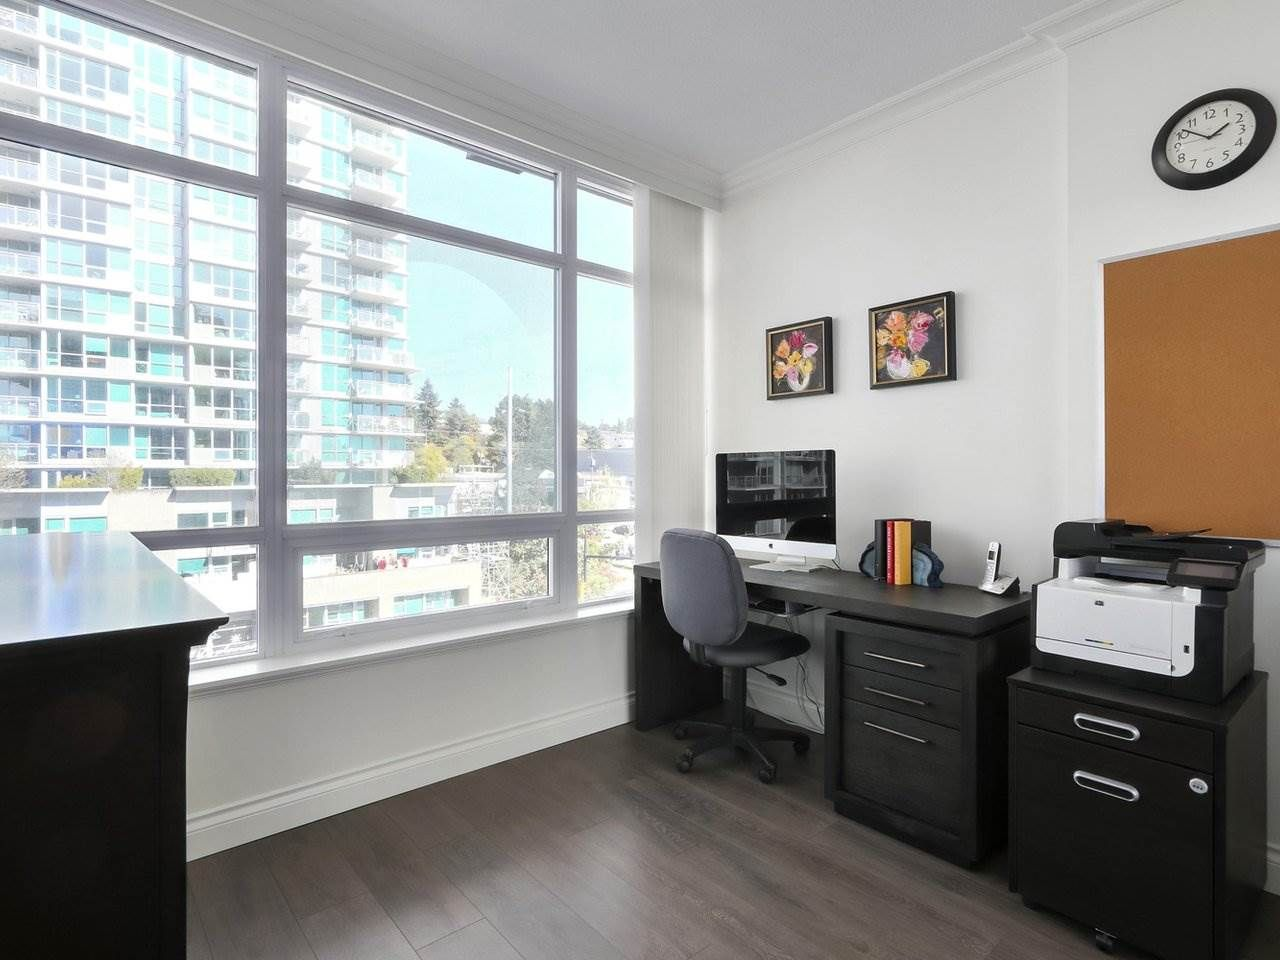 """Photo 13: Photos: 608 172 VICTORY SHIP Way in North Vancouver: Lower Lonsdale Condo for sale in """"Atrium at the Pier"""" : MLS®# R2454404"""